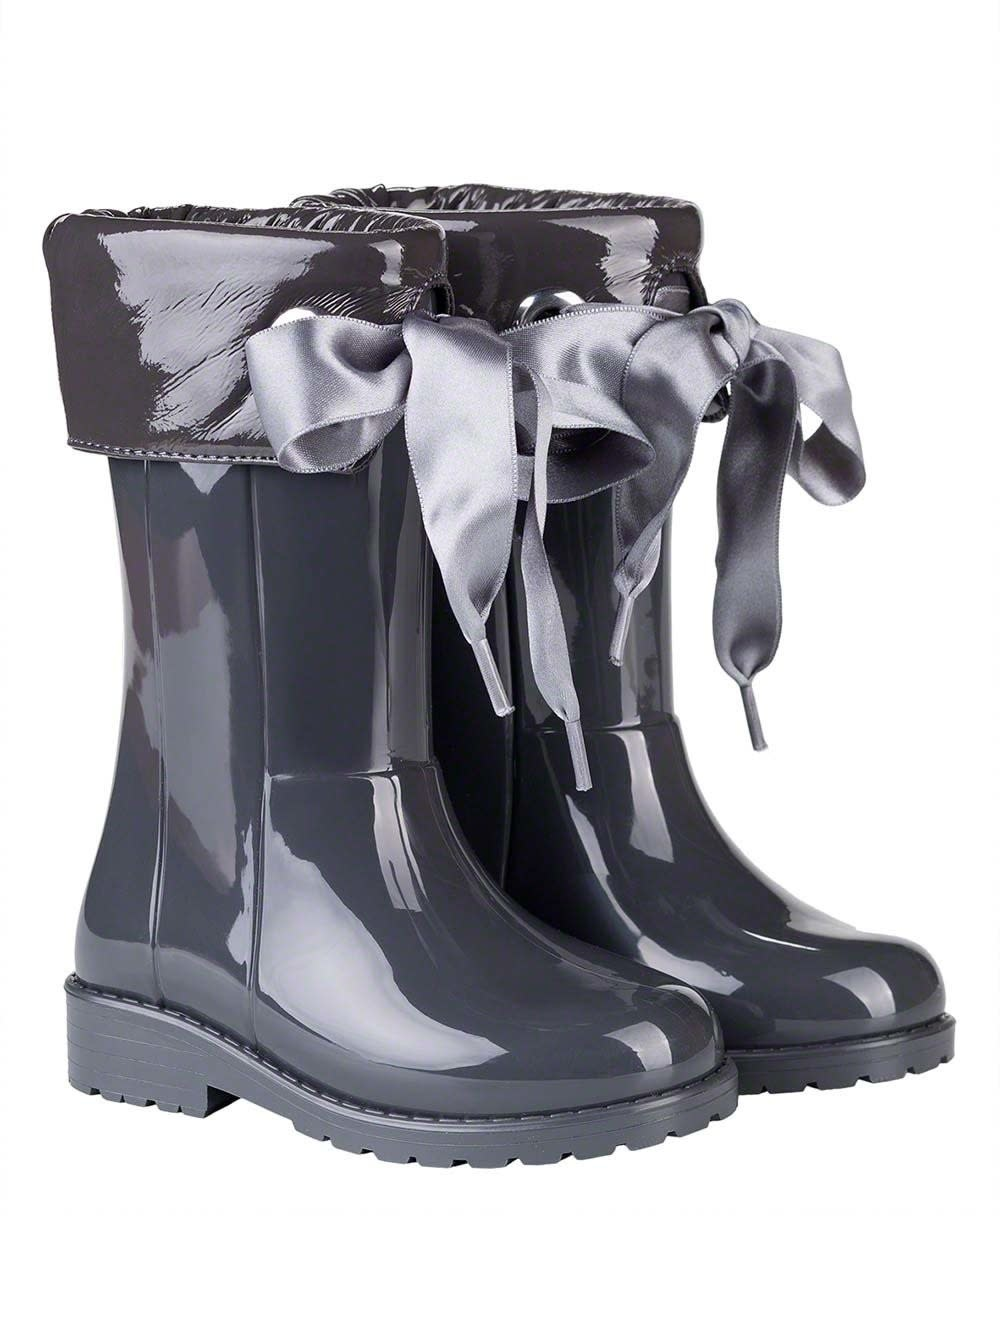 igor Igor Igor Campera Ribbon Tie Rainboot - Grey